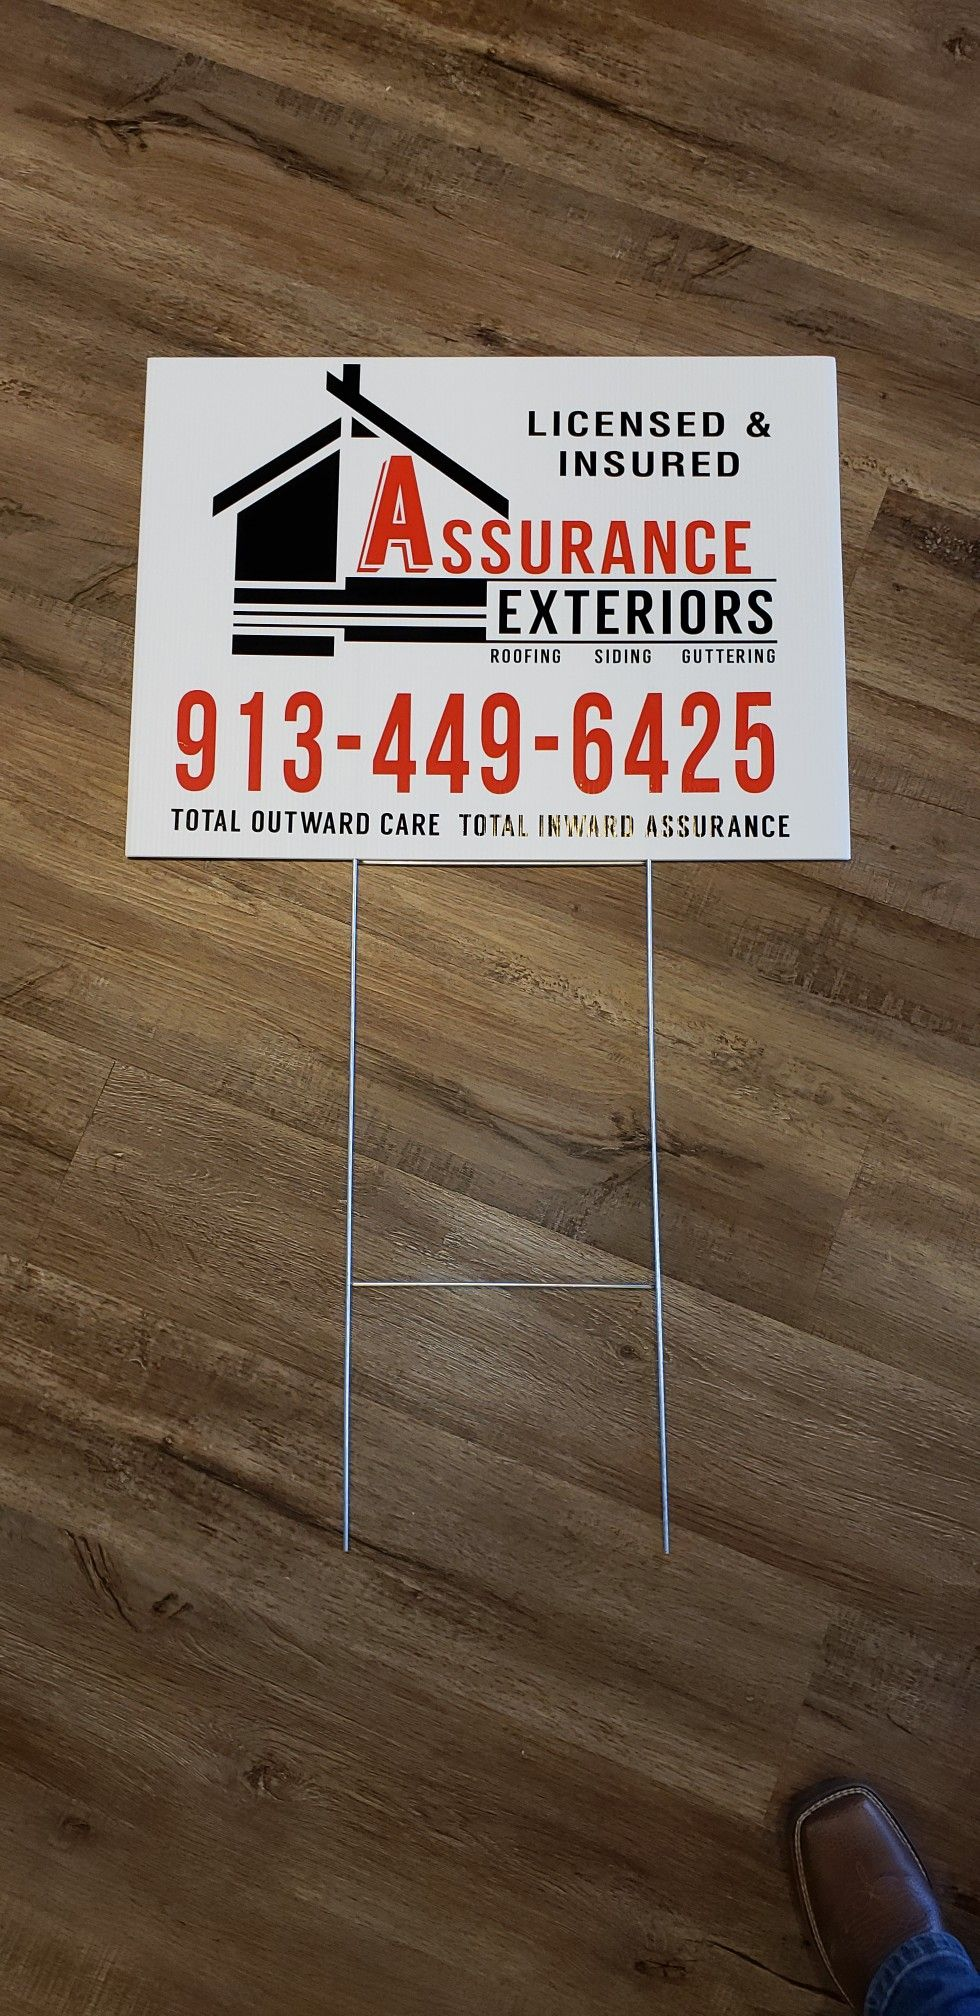 We Made More Yard Signs For Assurance Exteriors Wesellthose Shannon A Engler Brand Warrior Gm Lbm Solutions C Channel Letters Custom Sign Lettering